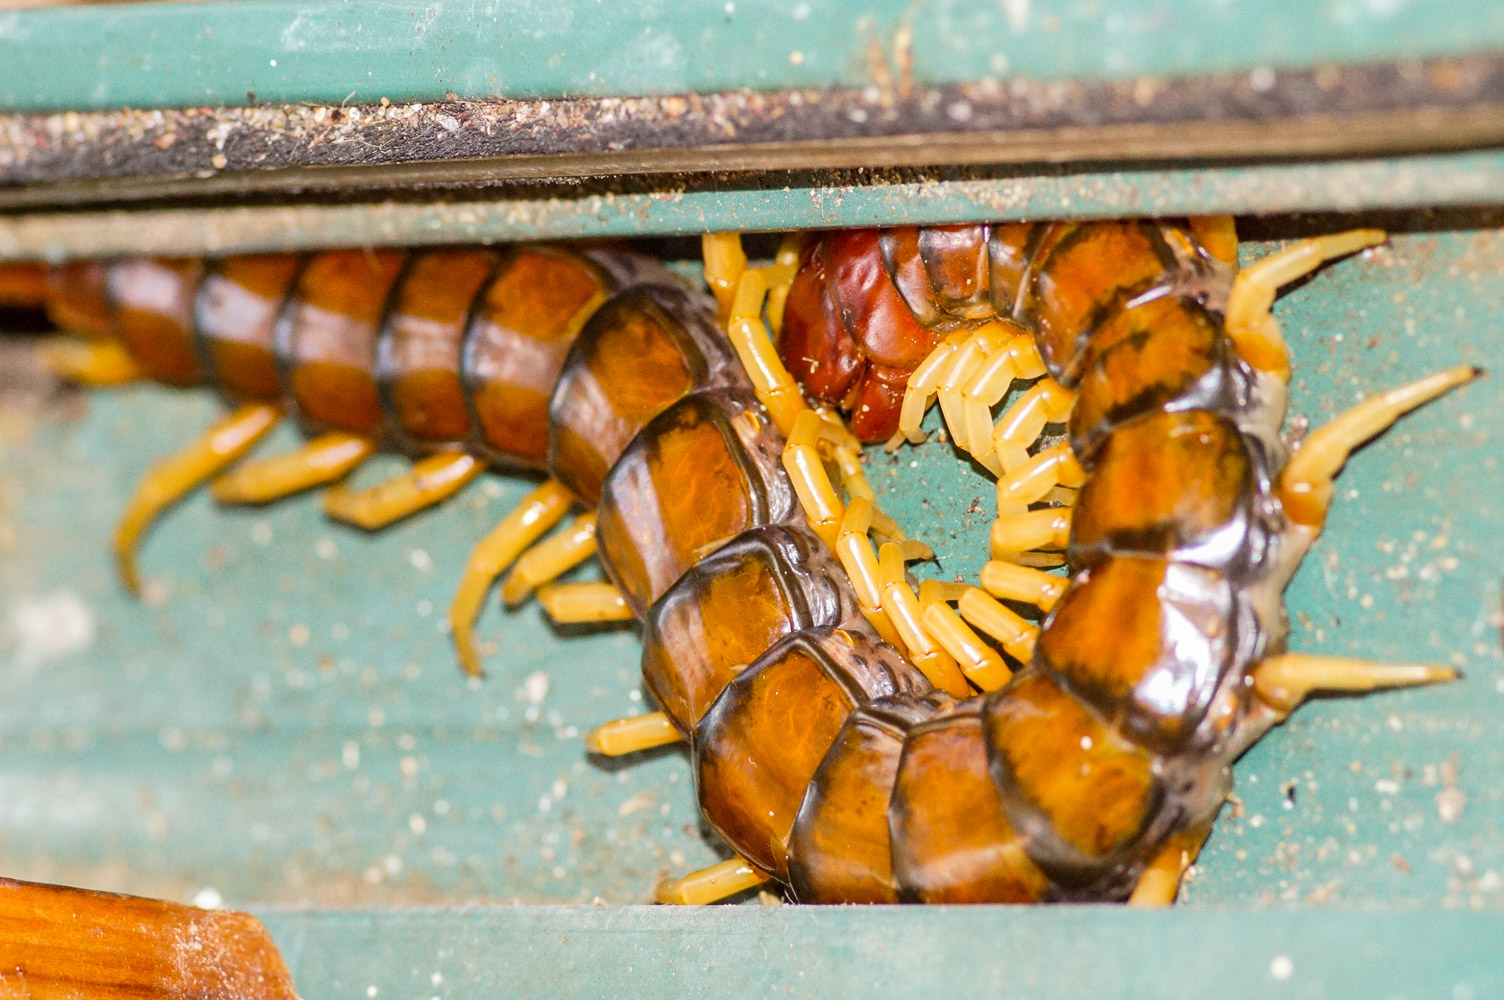 Featured image: Our secret urban wildlife: Giant centipedes